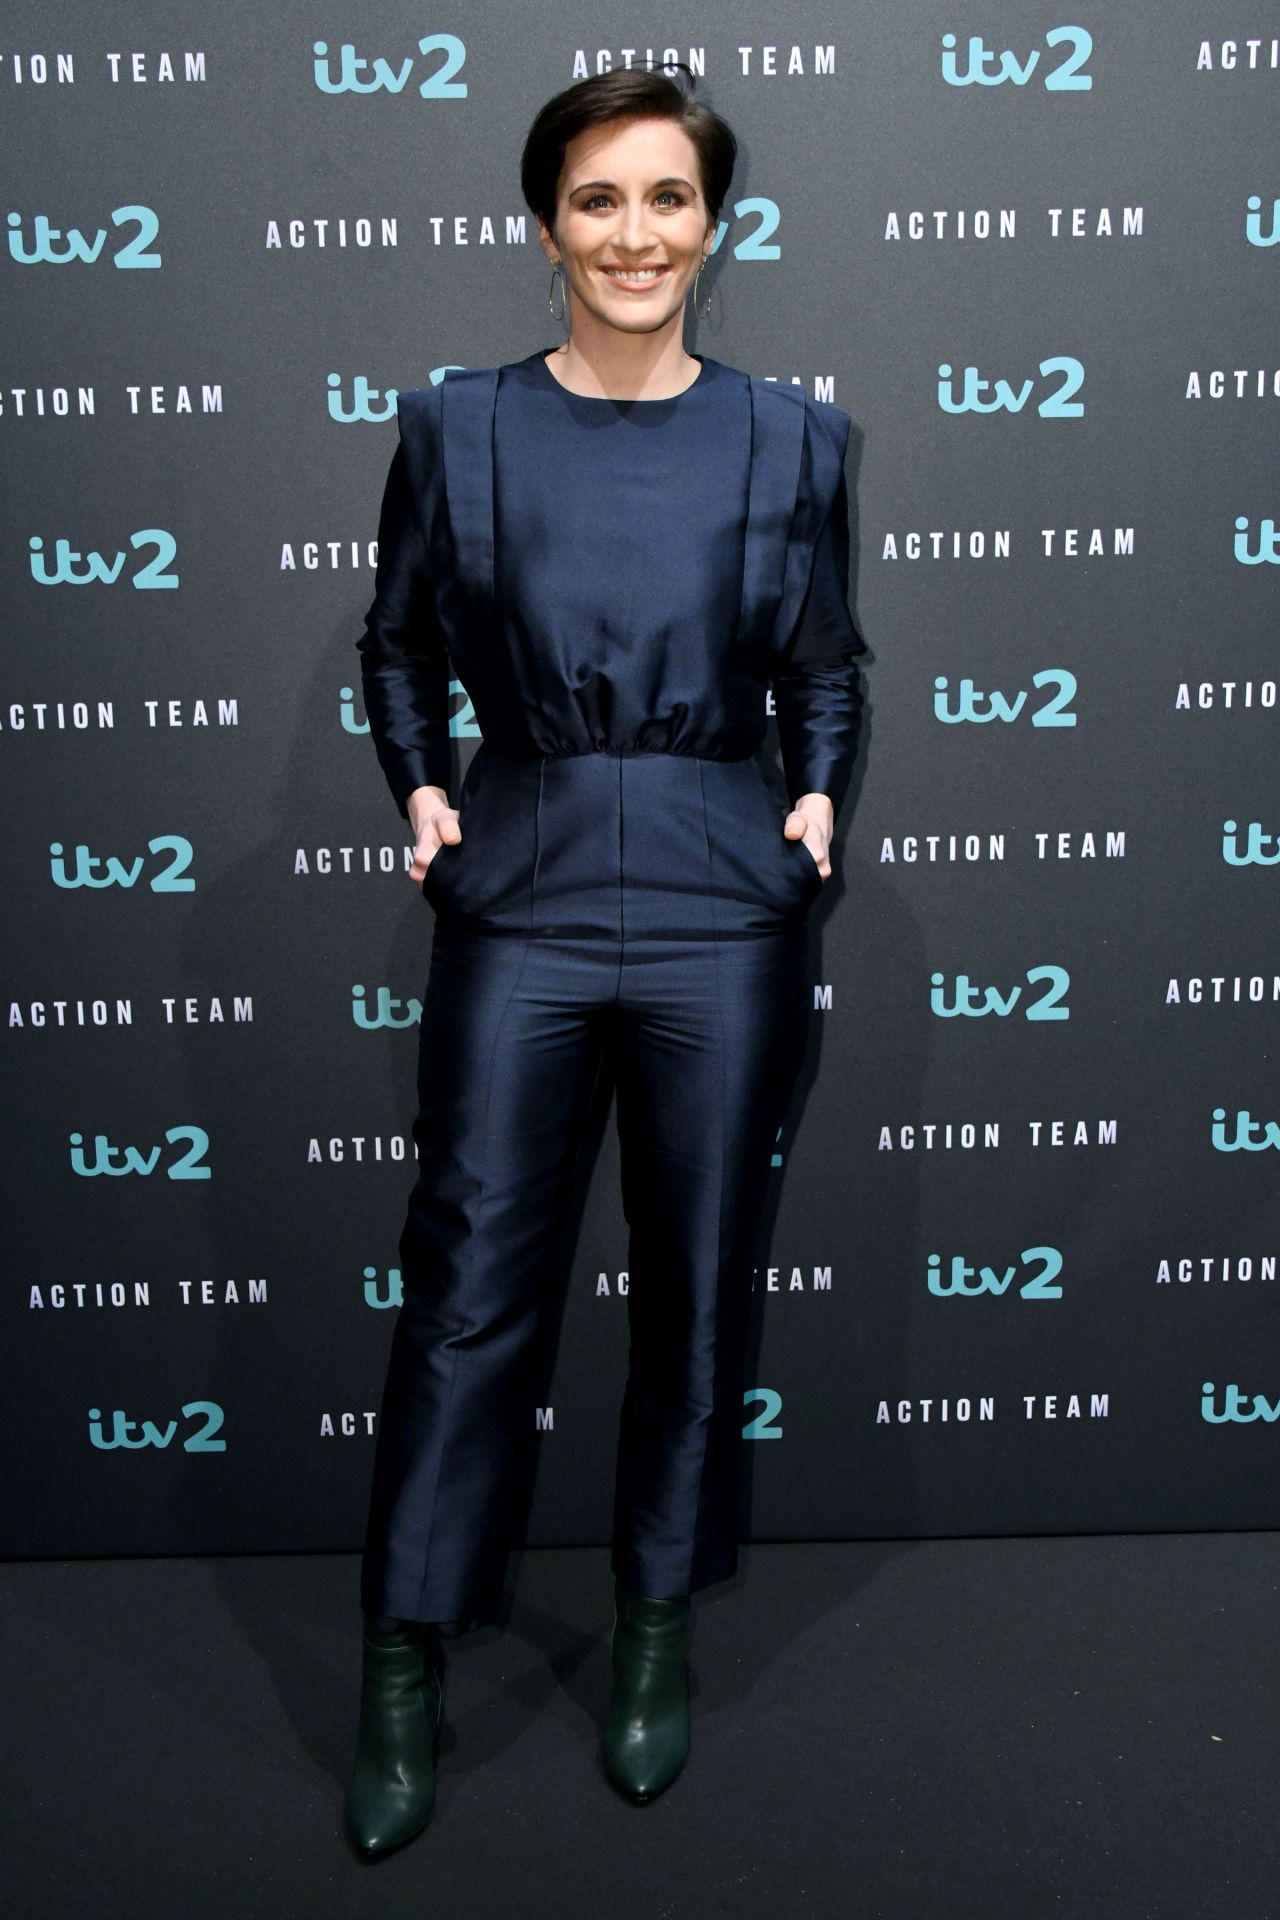 Discussion on this topic: Jessie Royce Landis, vicky-mcclure/